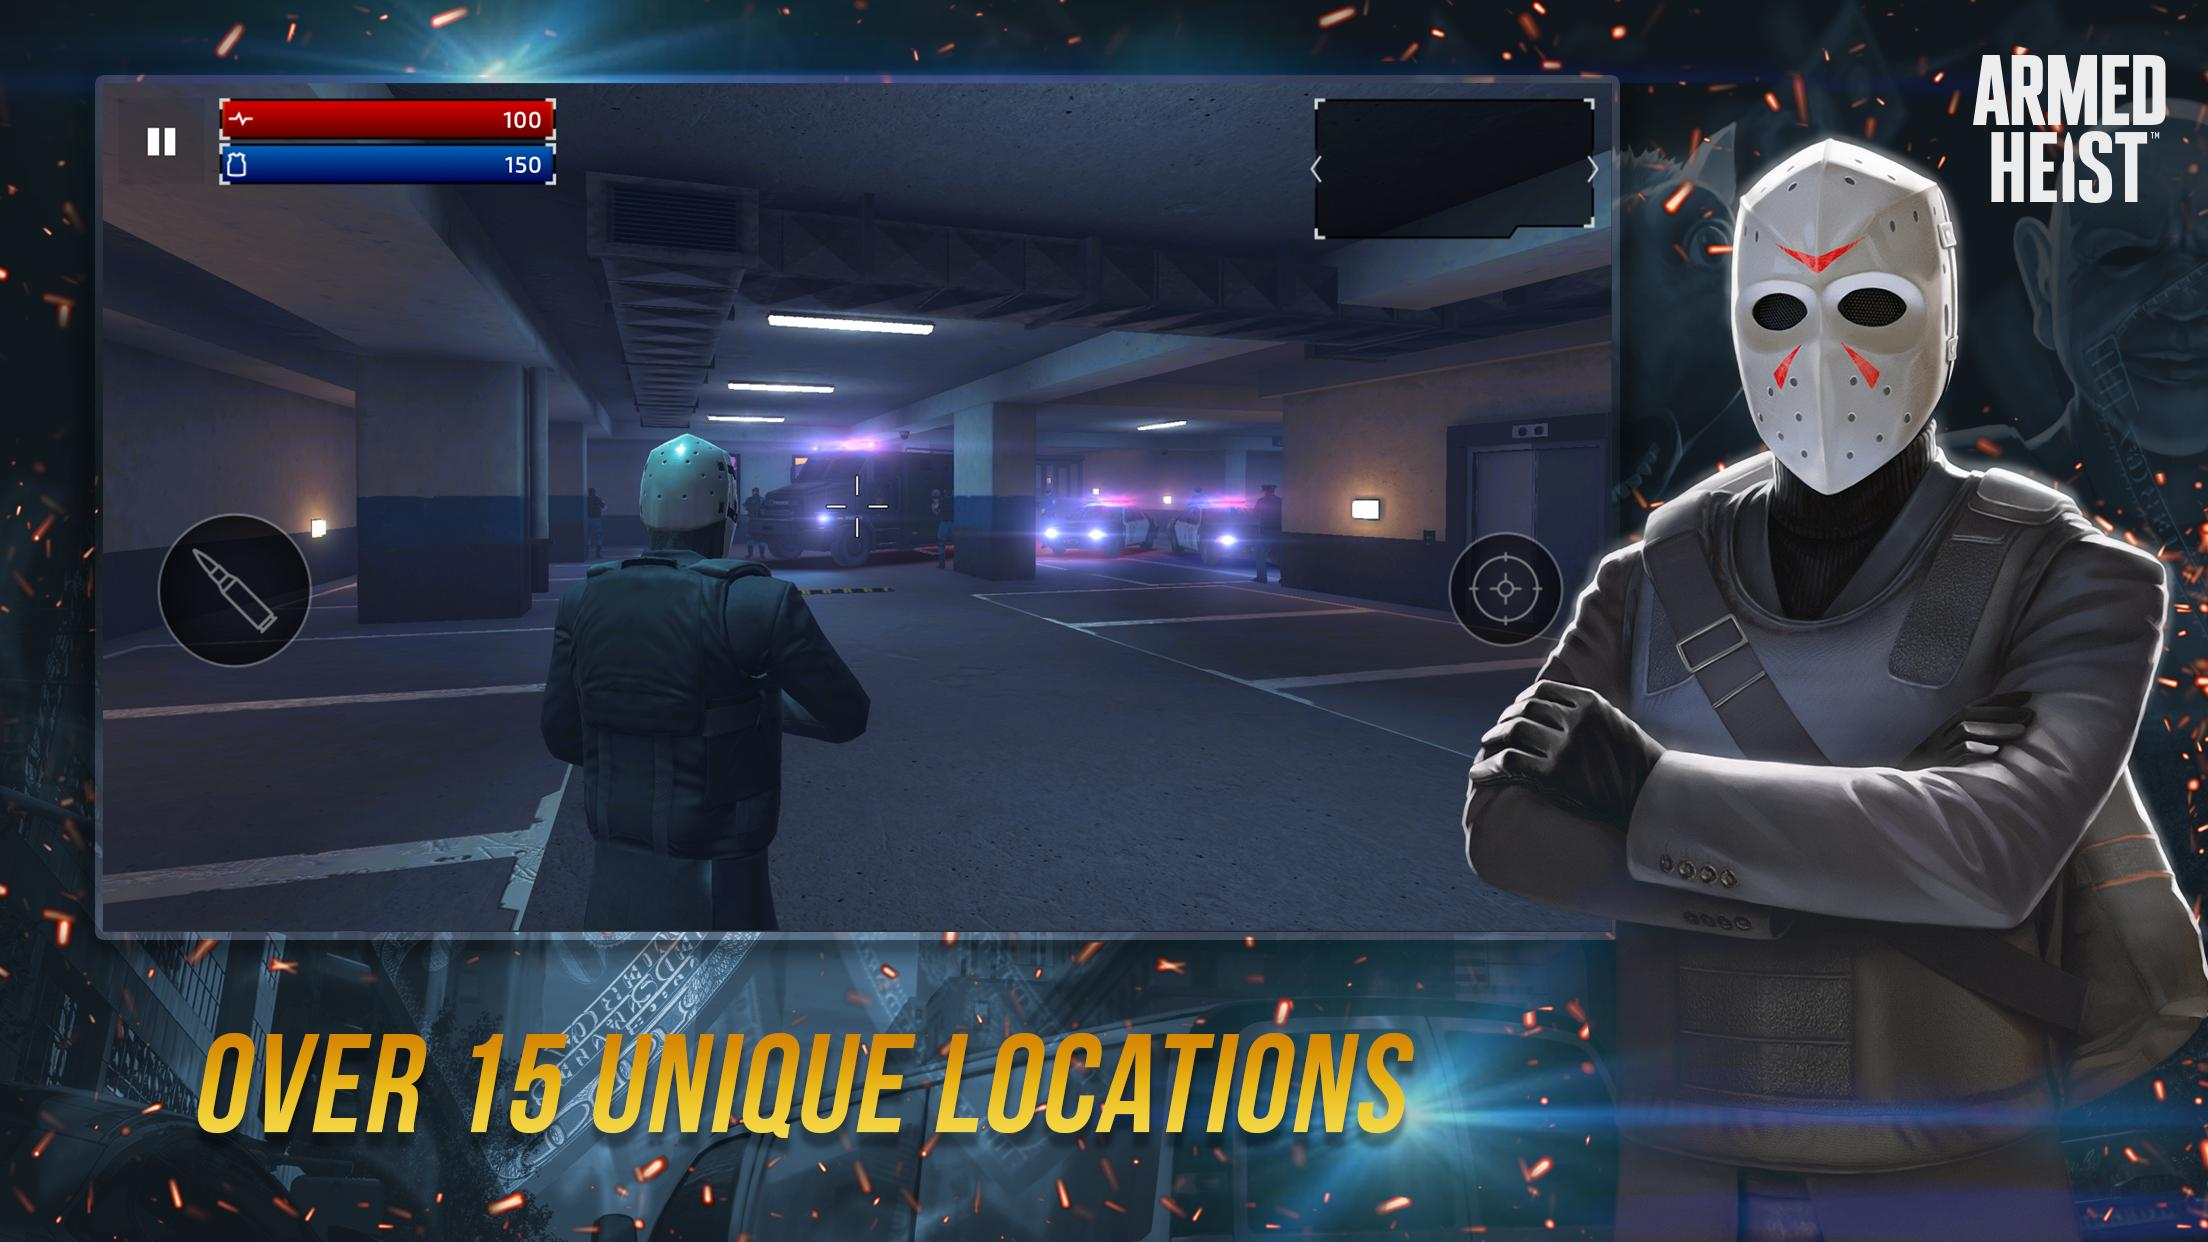 Armed Heist TPS 3D Sniper shooting gun games 2.1.1 Screenshot 11